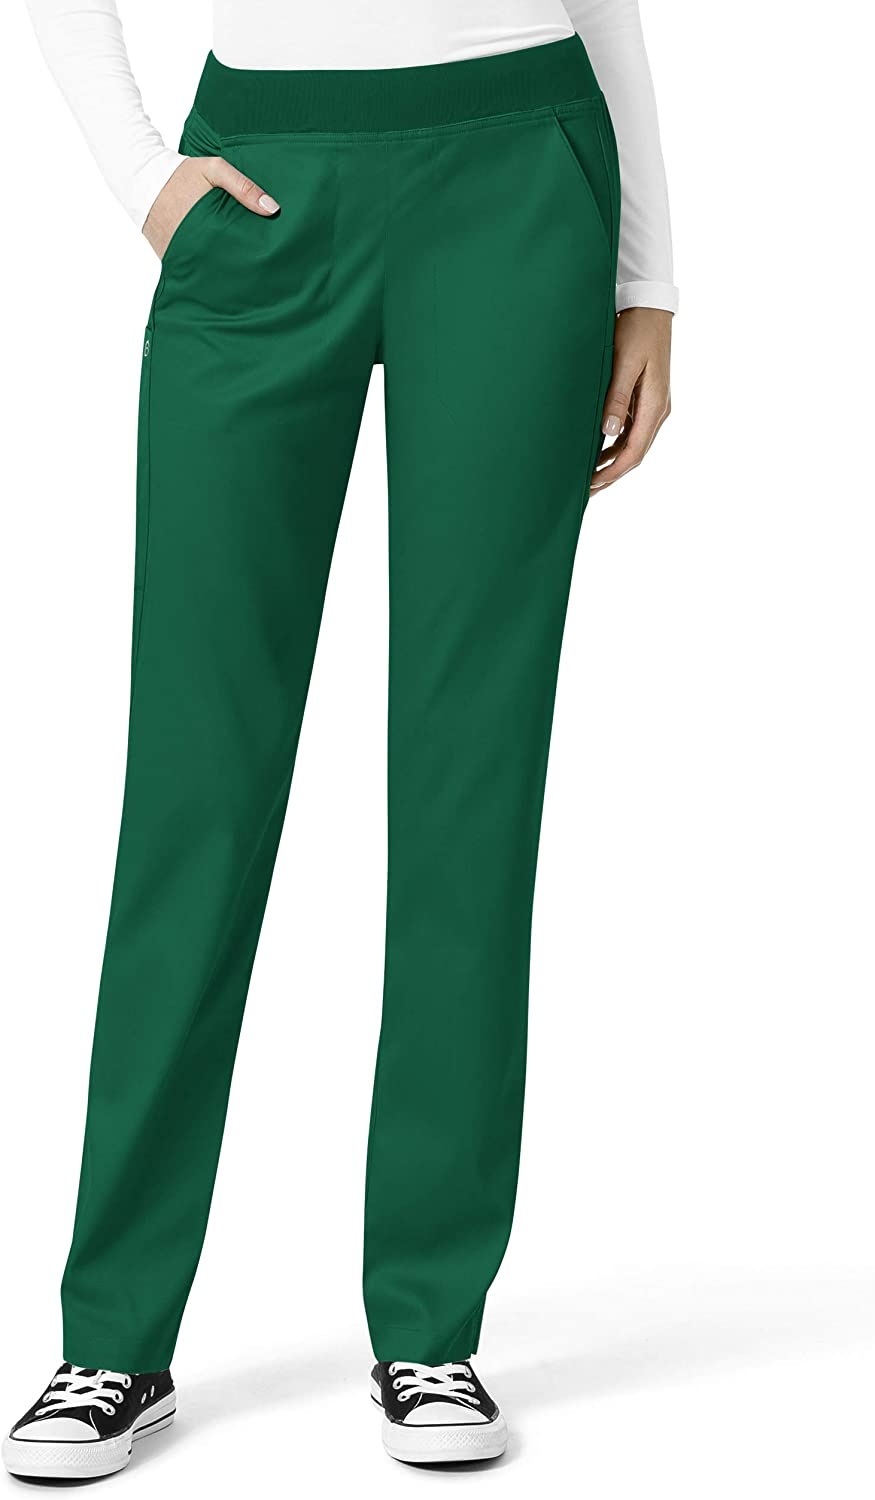 WonderWink Inventory cleanup selling sale PRO Women's Knit Waist X-La Hunter Scrub Cargo SEAL limited product Pant